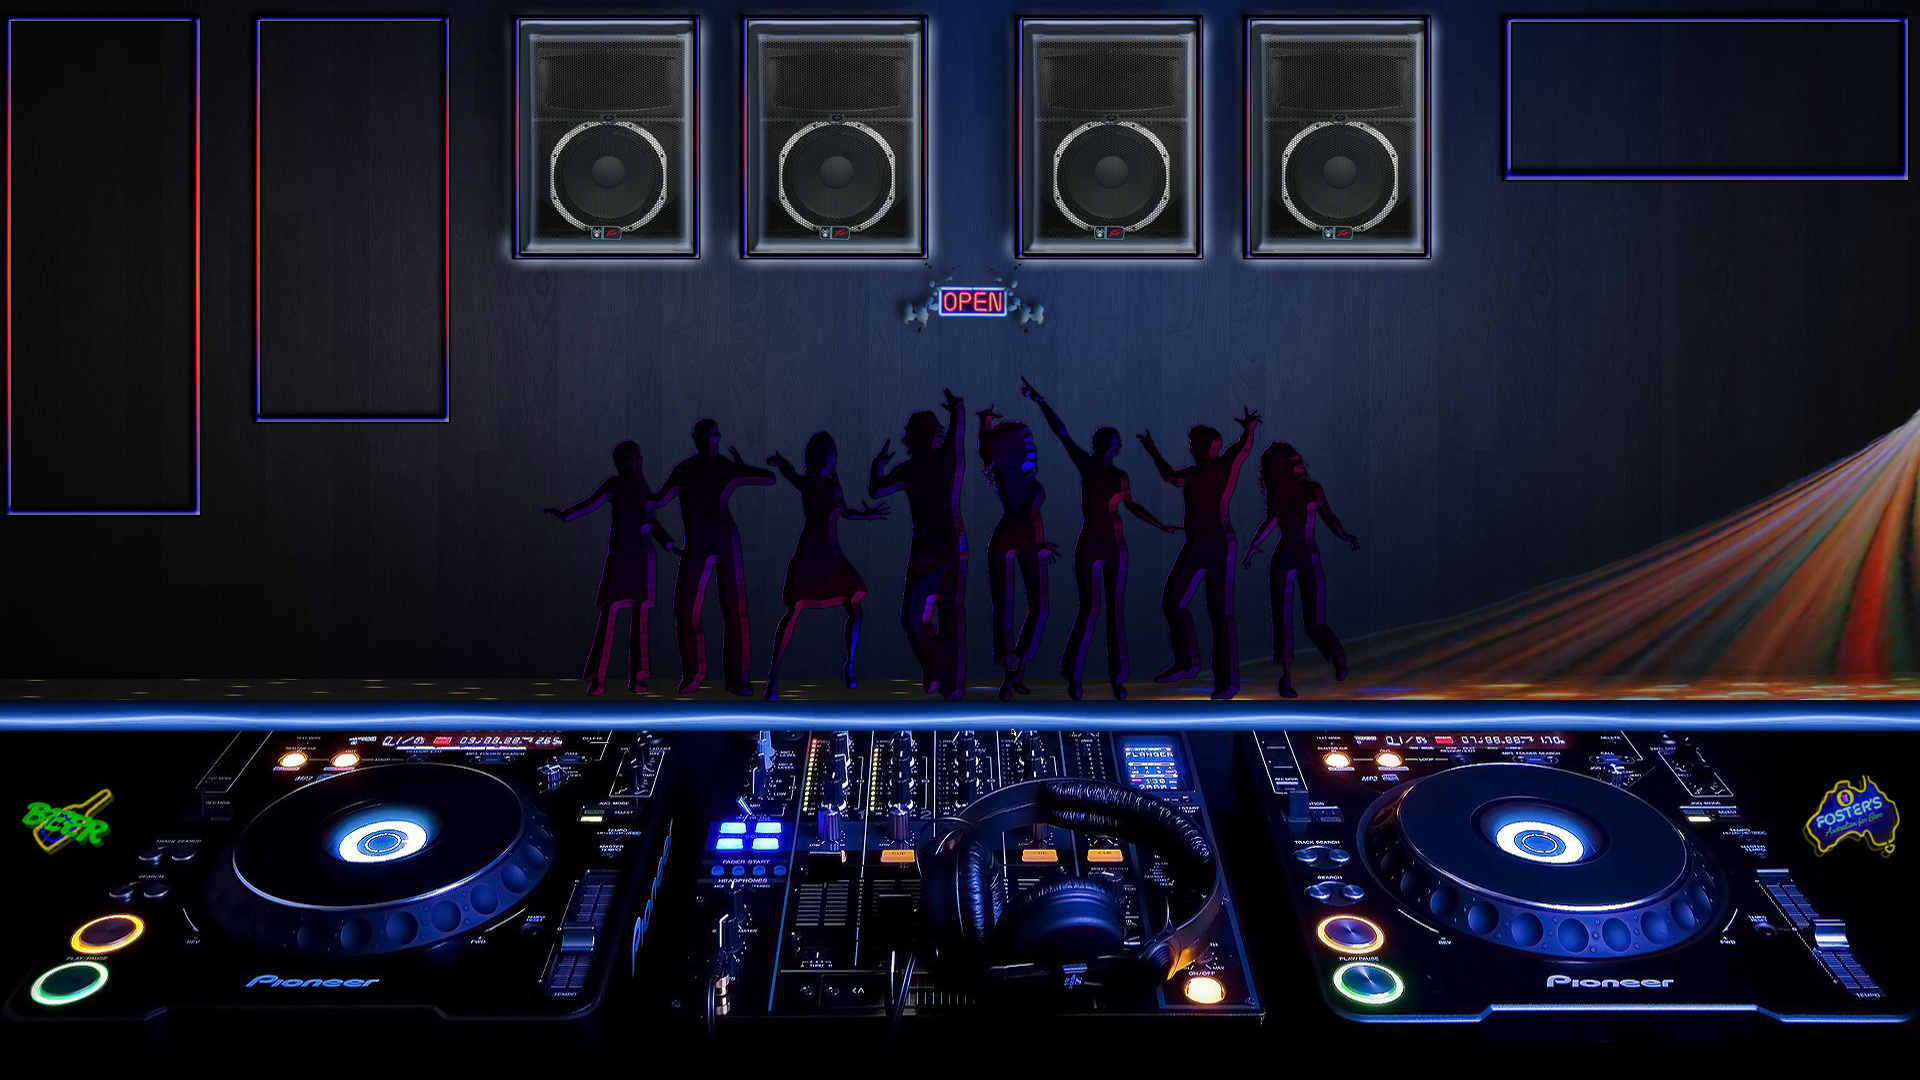 Dj full hd wallpaper and achtergrond 1920x1080 id 174978 for Popular house music